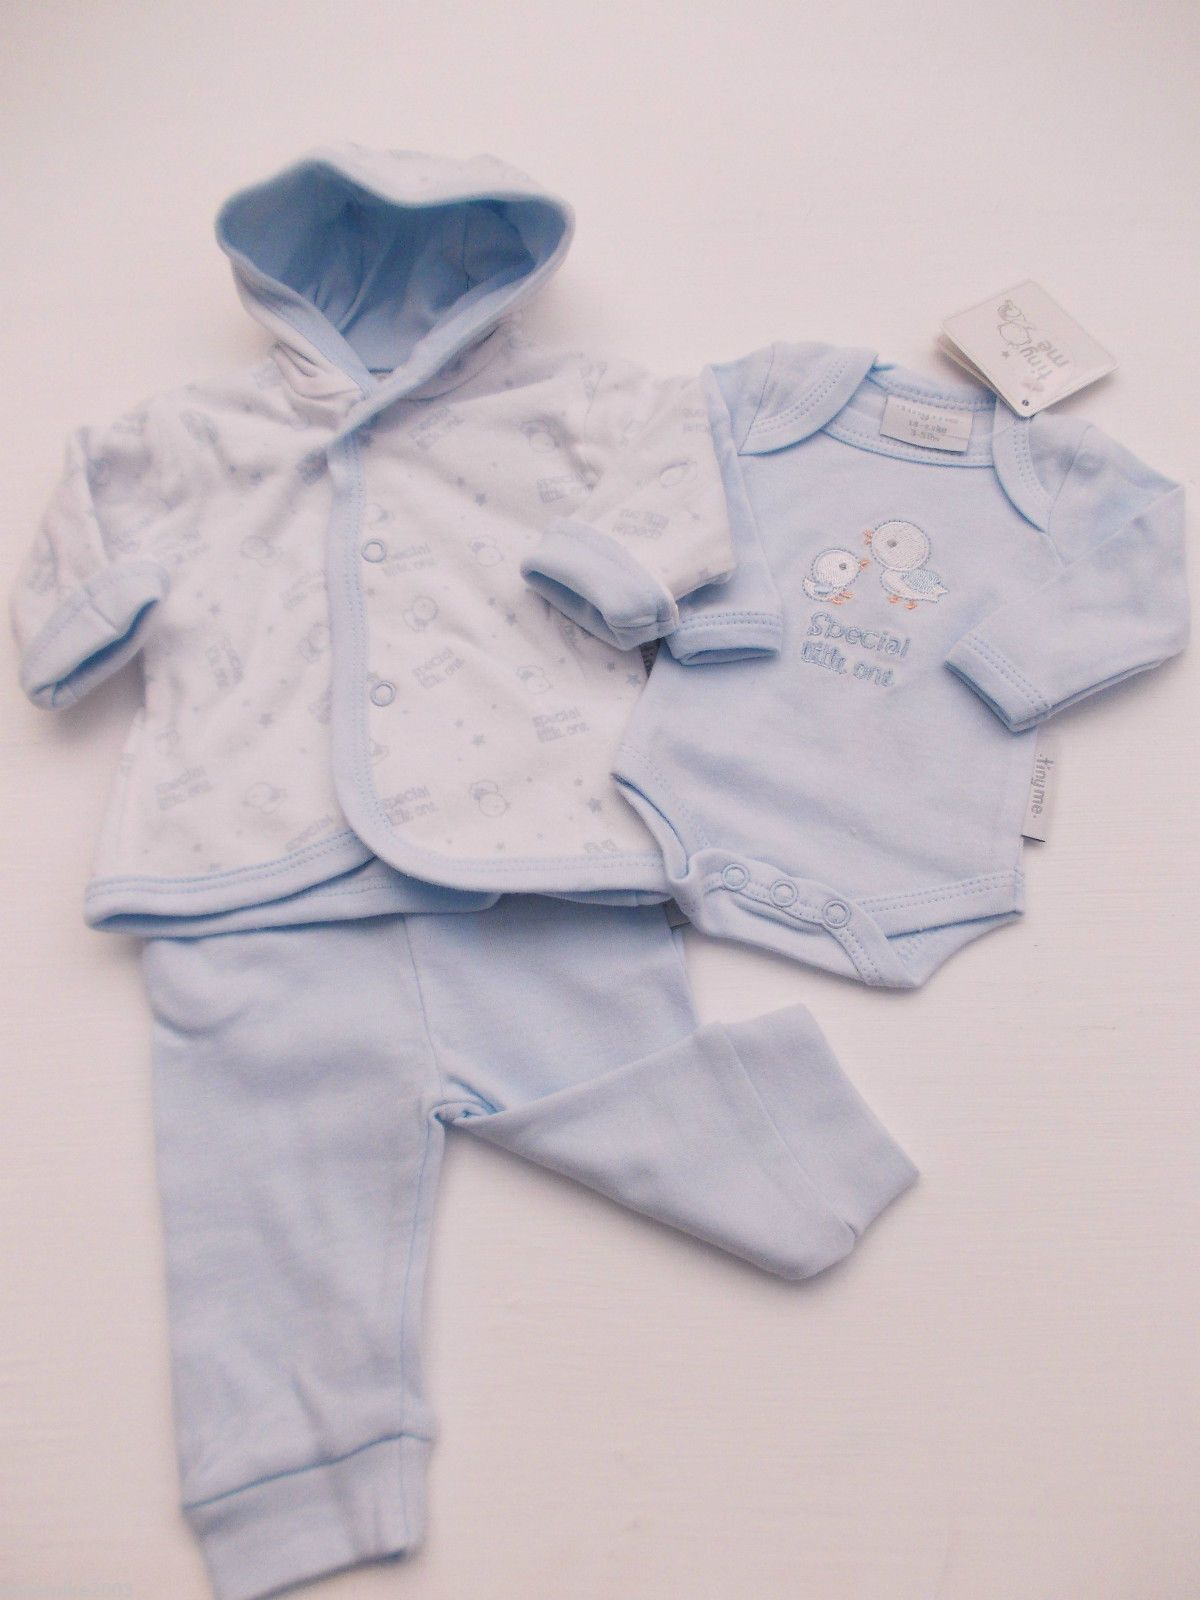 9a3a3d90f BNWT Baby Prem Premature Preemie Baby Boys Girls Clothes 3 Piece outfit Set  | eBay